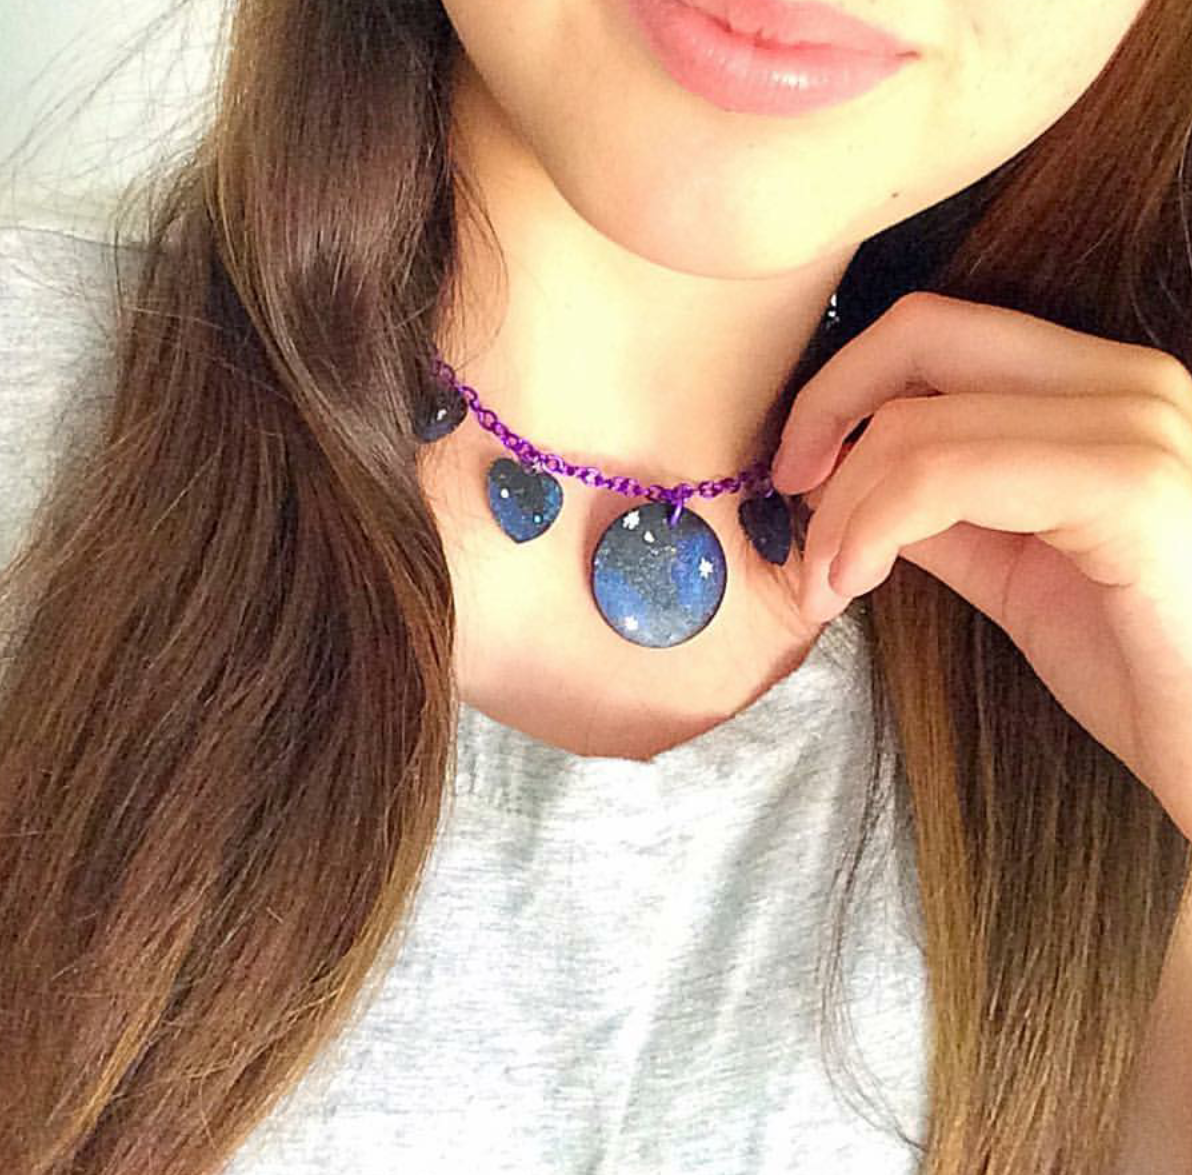 @lexxi.may is out of this world with the Galaxy Love necklace